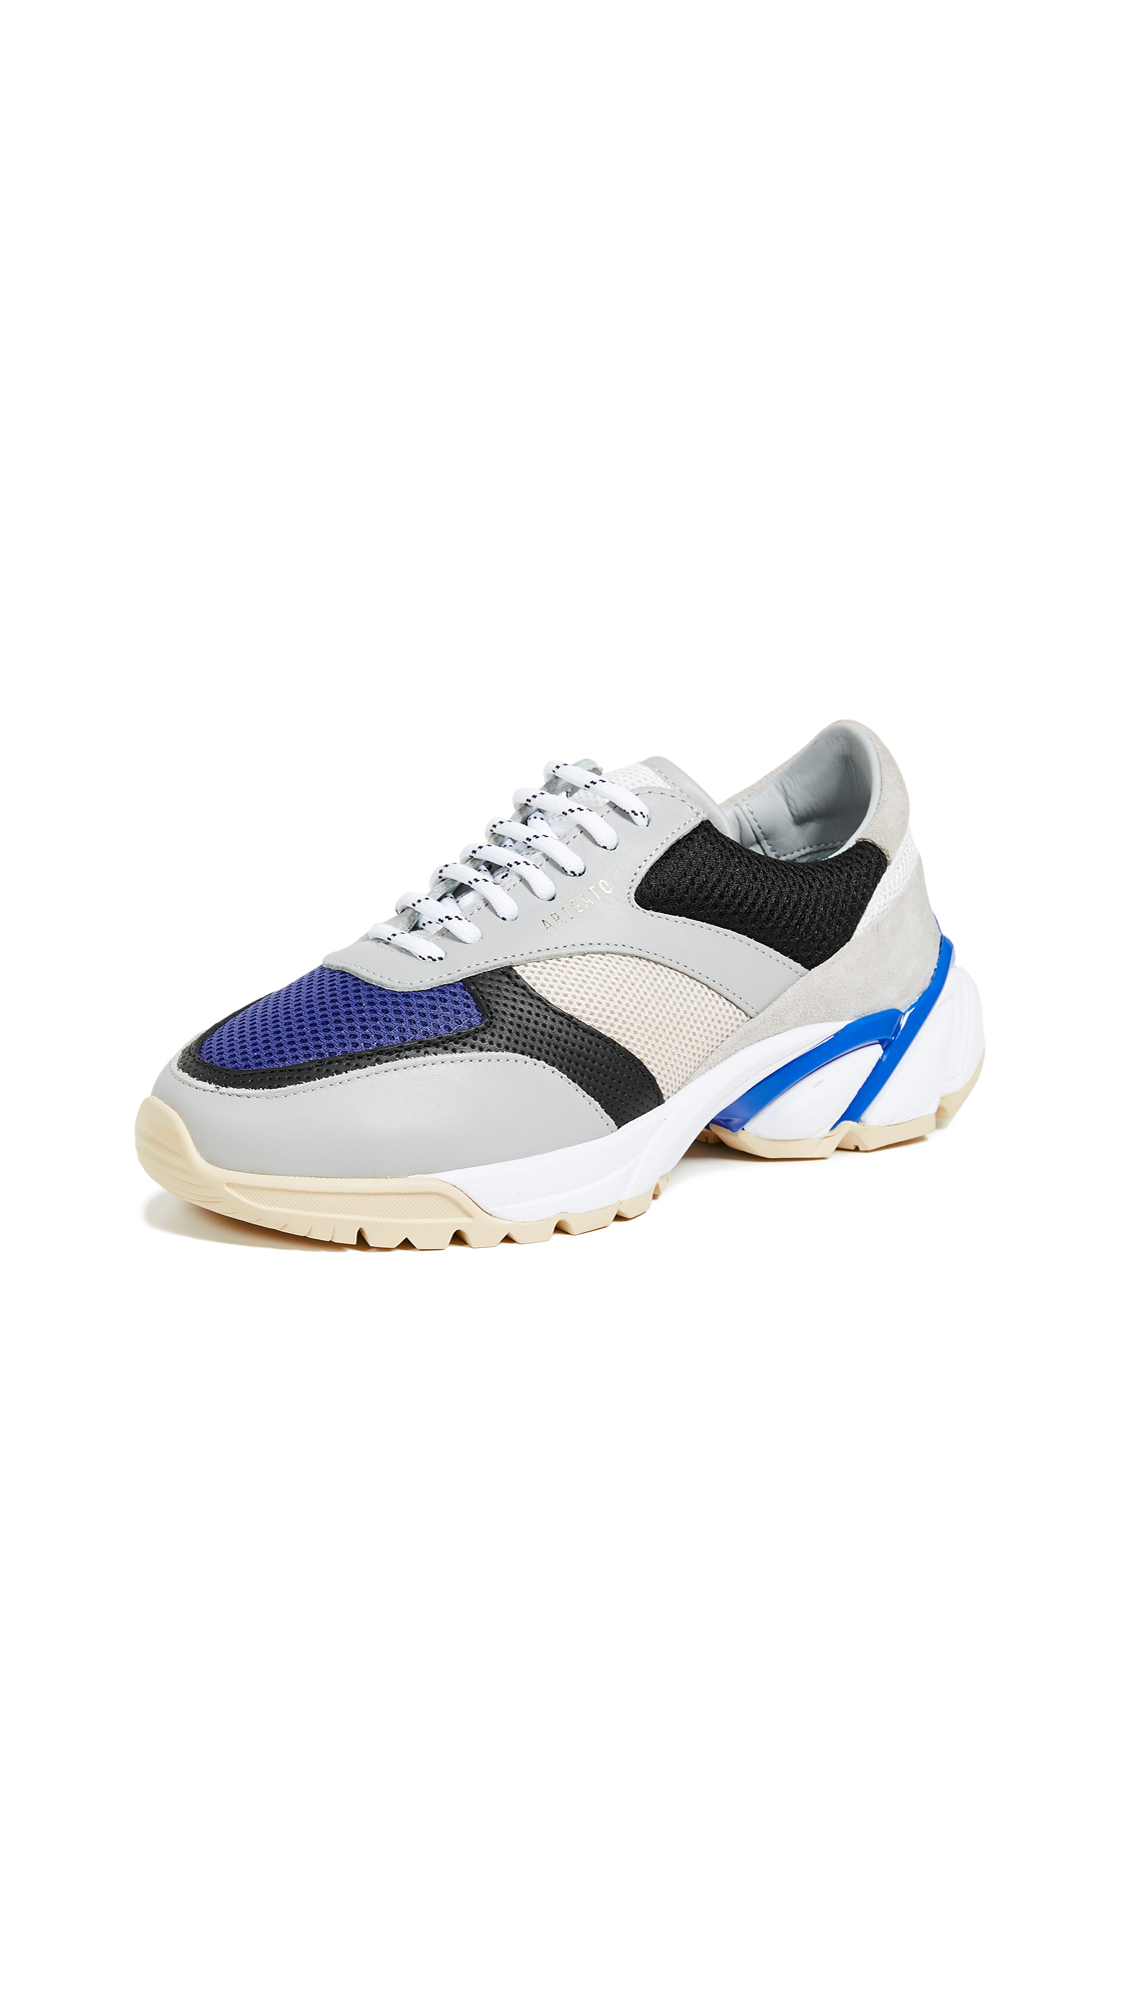 Axel Arigato Tech Runner Sneakers - Grey/Blue/Black